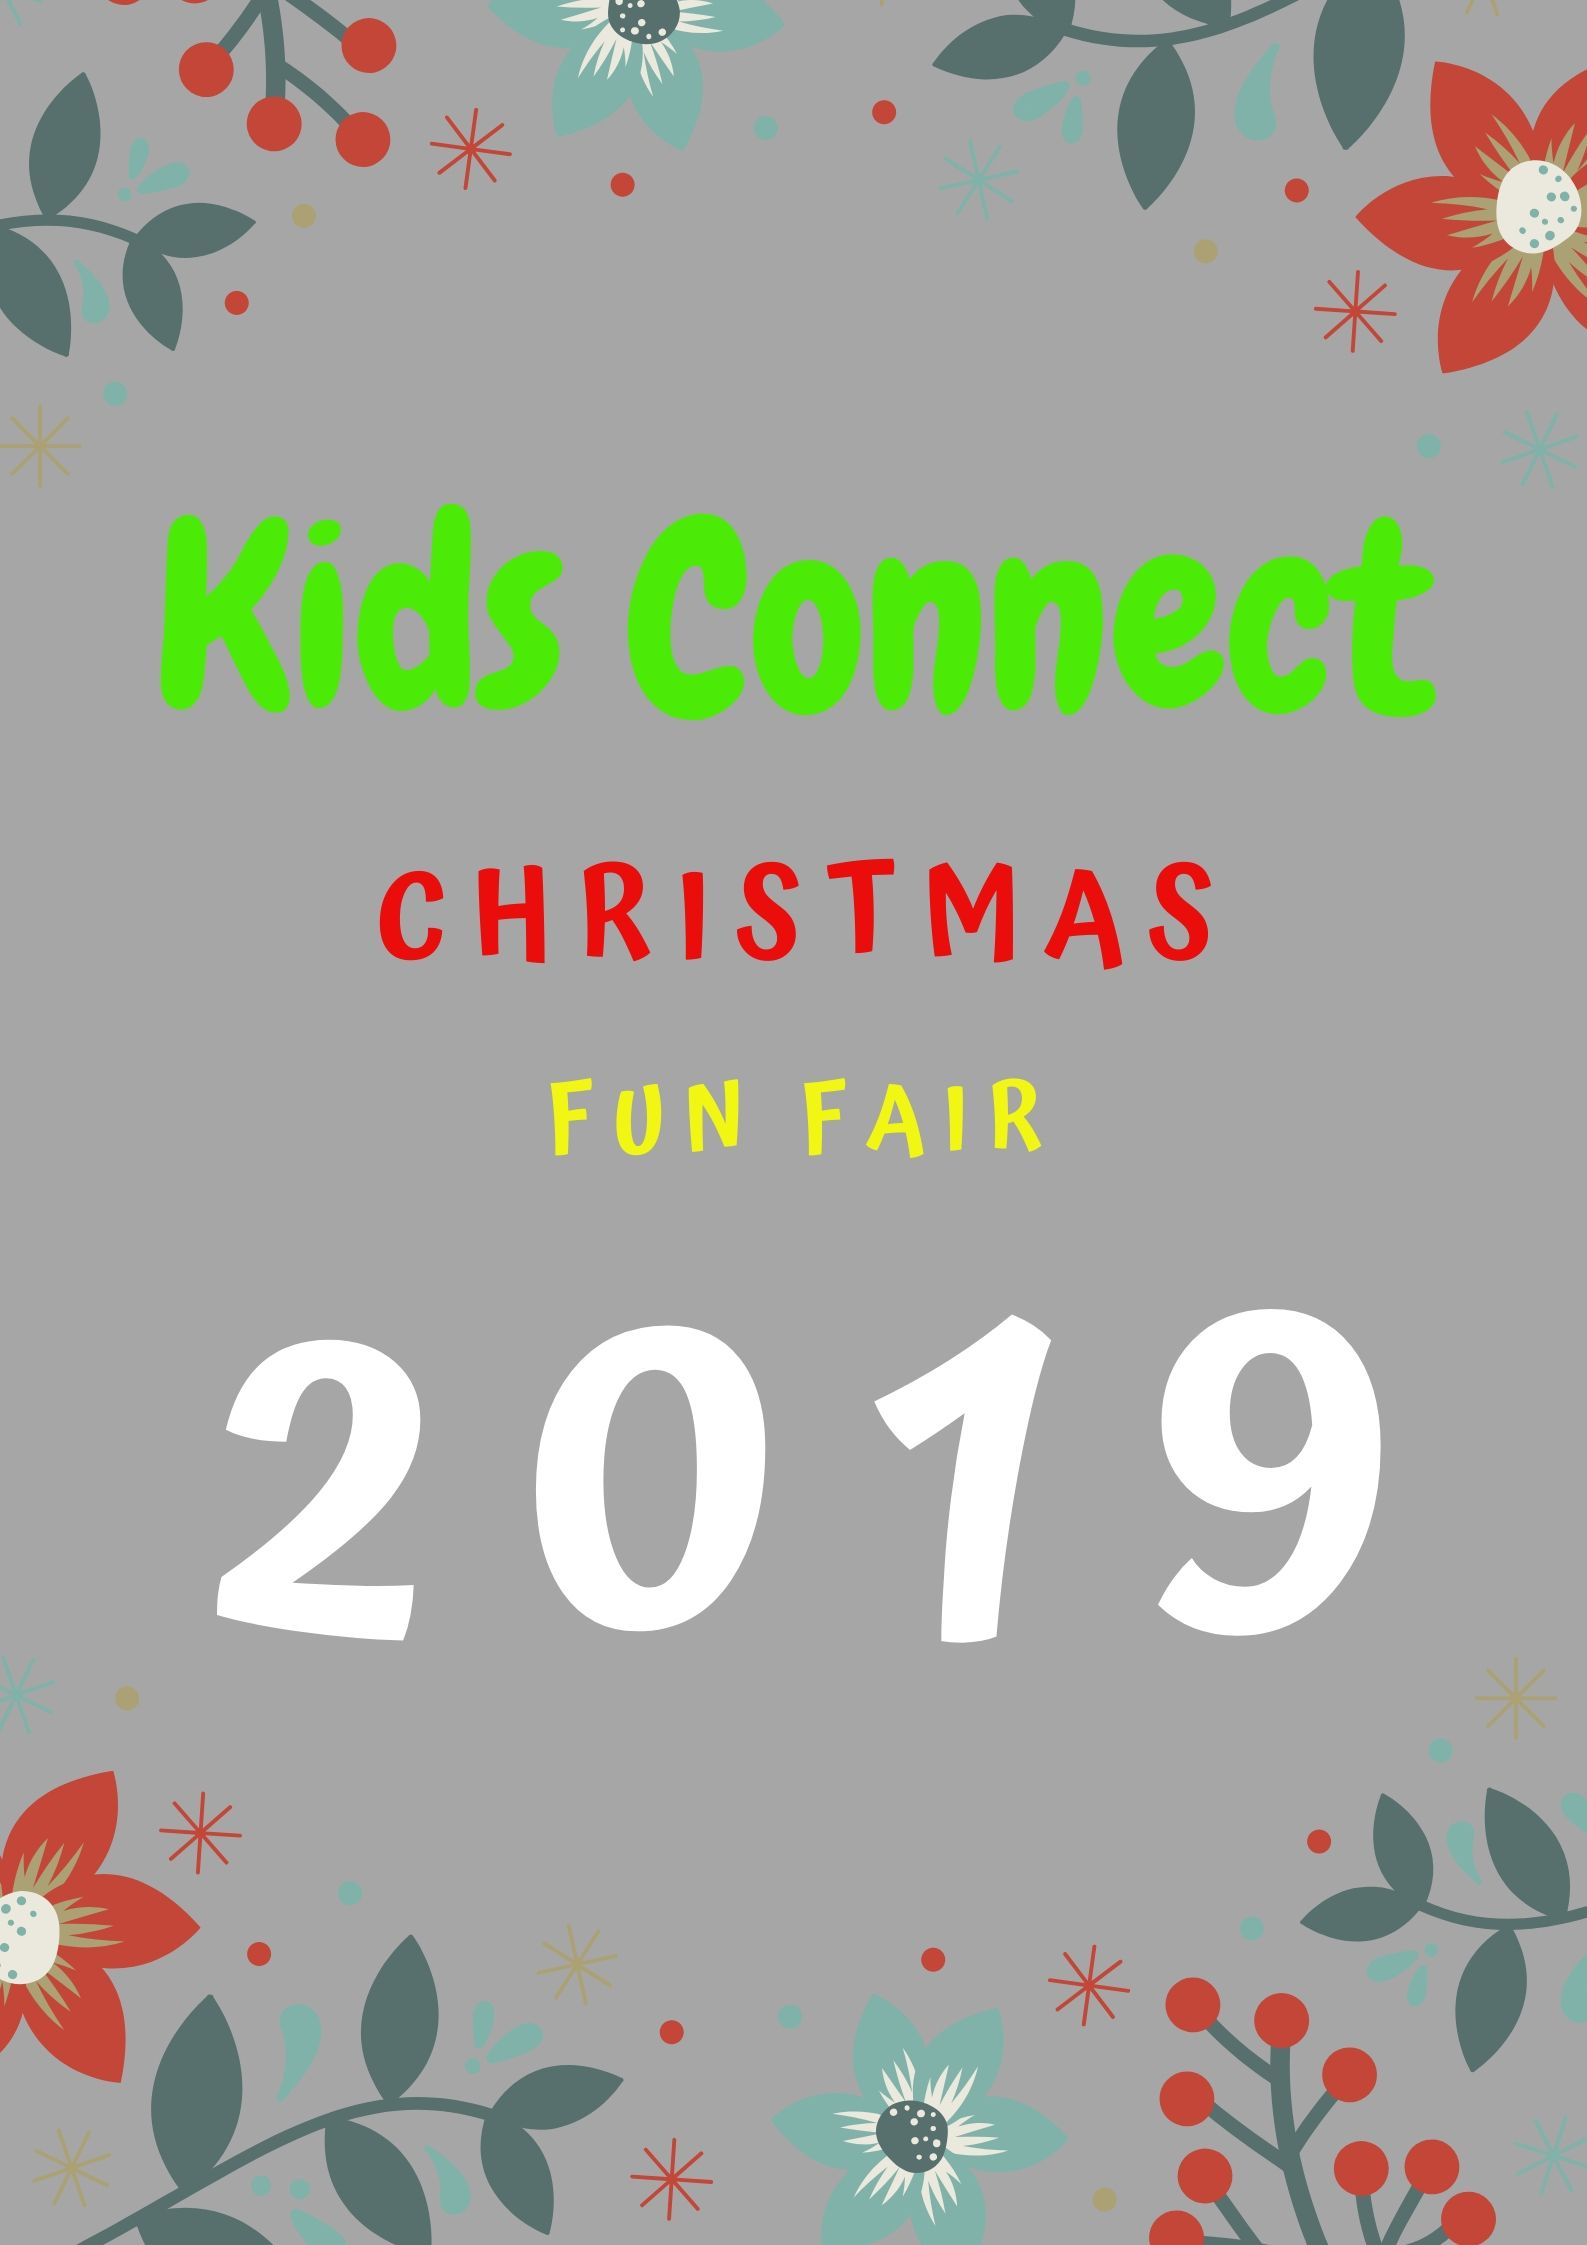 Kids Connect christmas Funfair Surulere